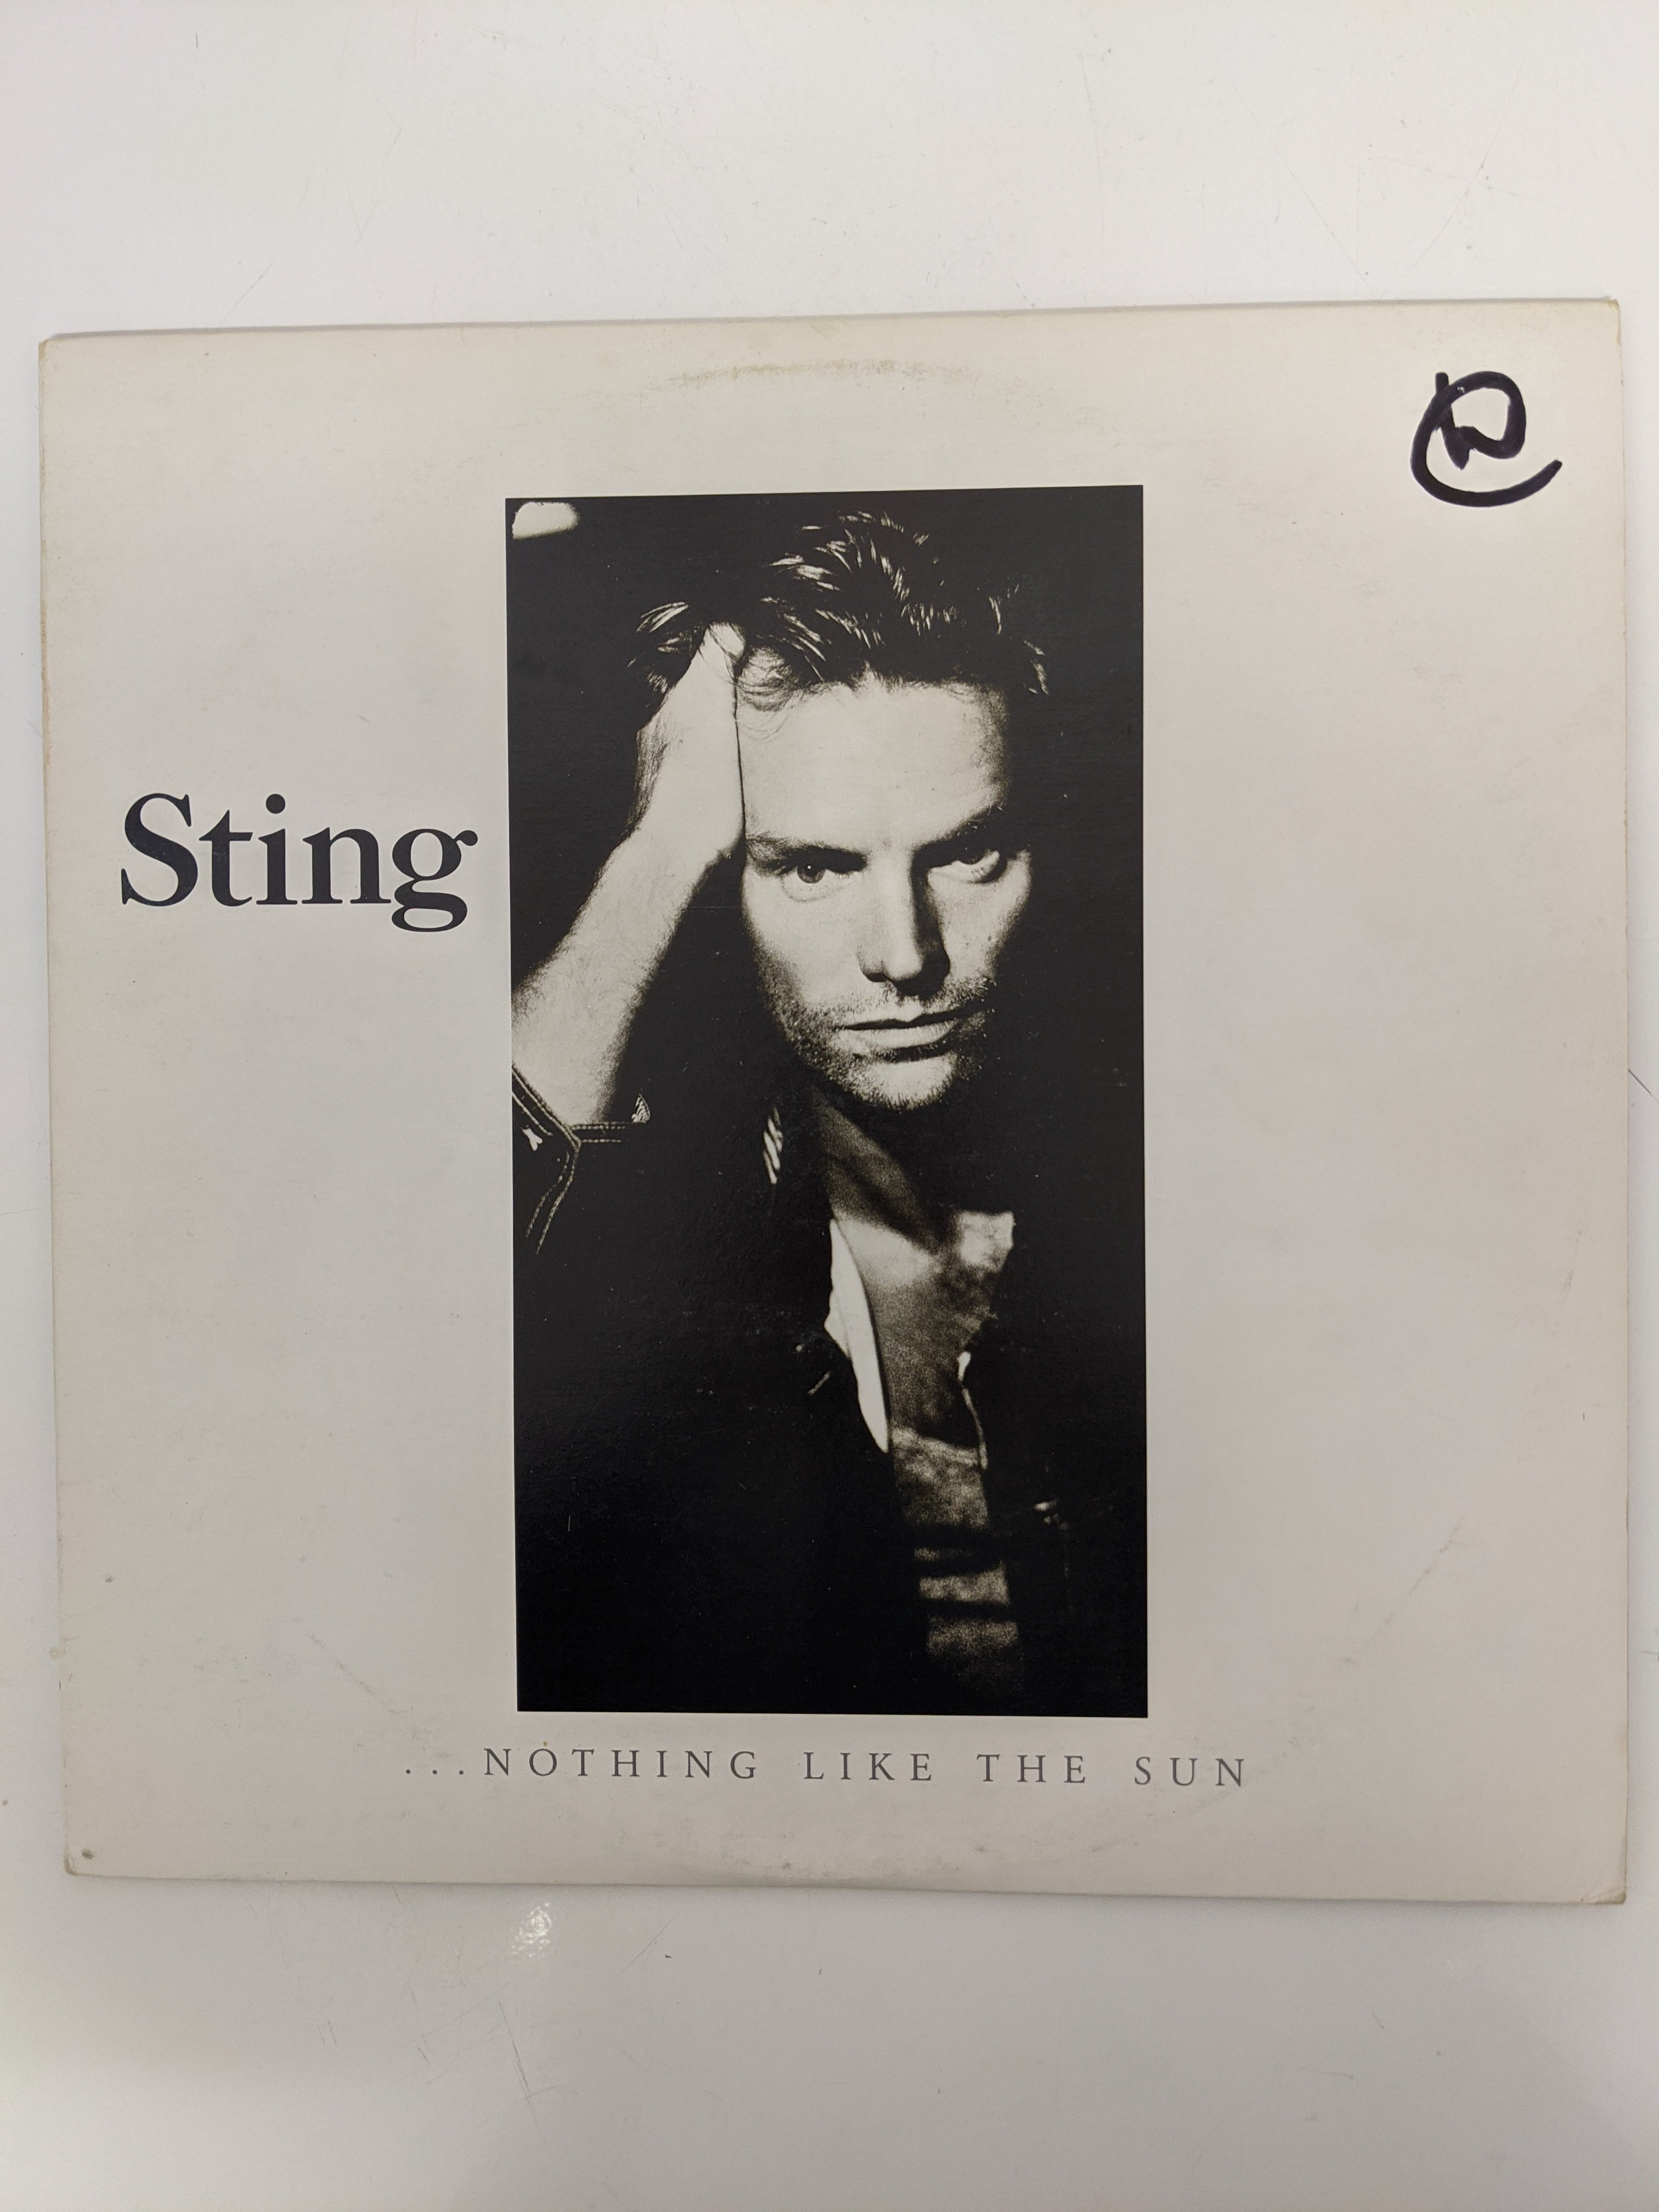 Sting - Nothing Like The Sun Vinyl